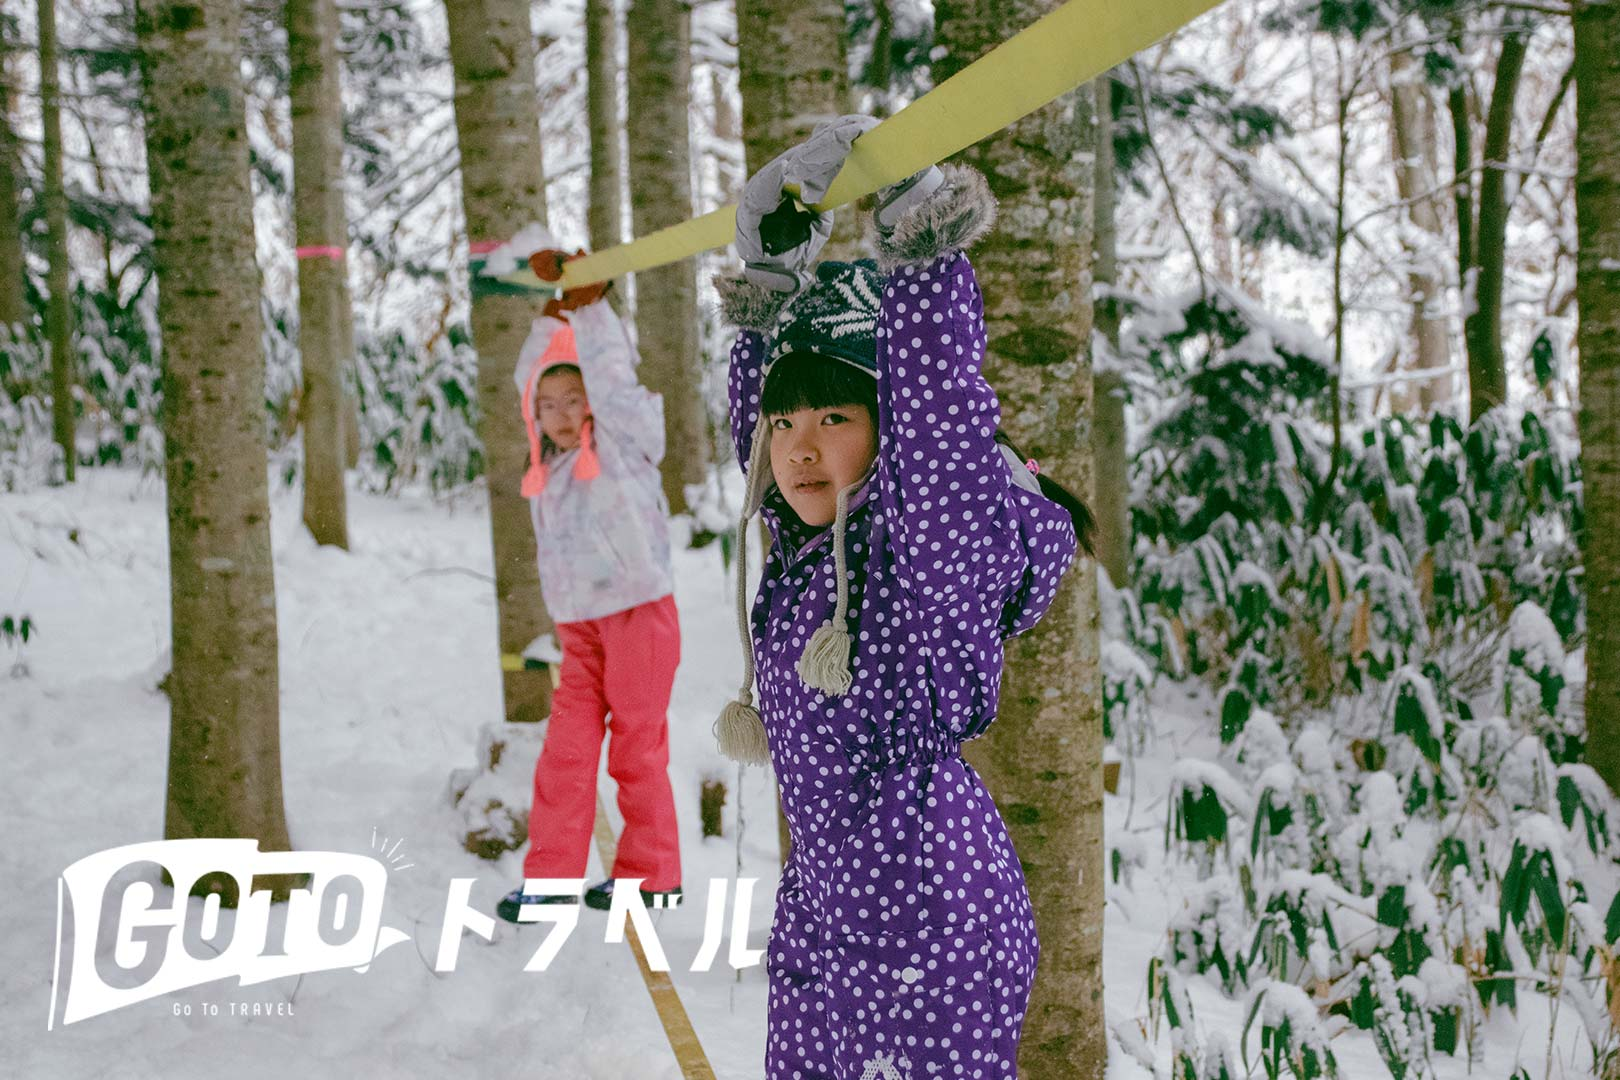 EdVenture Winter Kids' Camp + Go To Travel Campaign